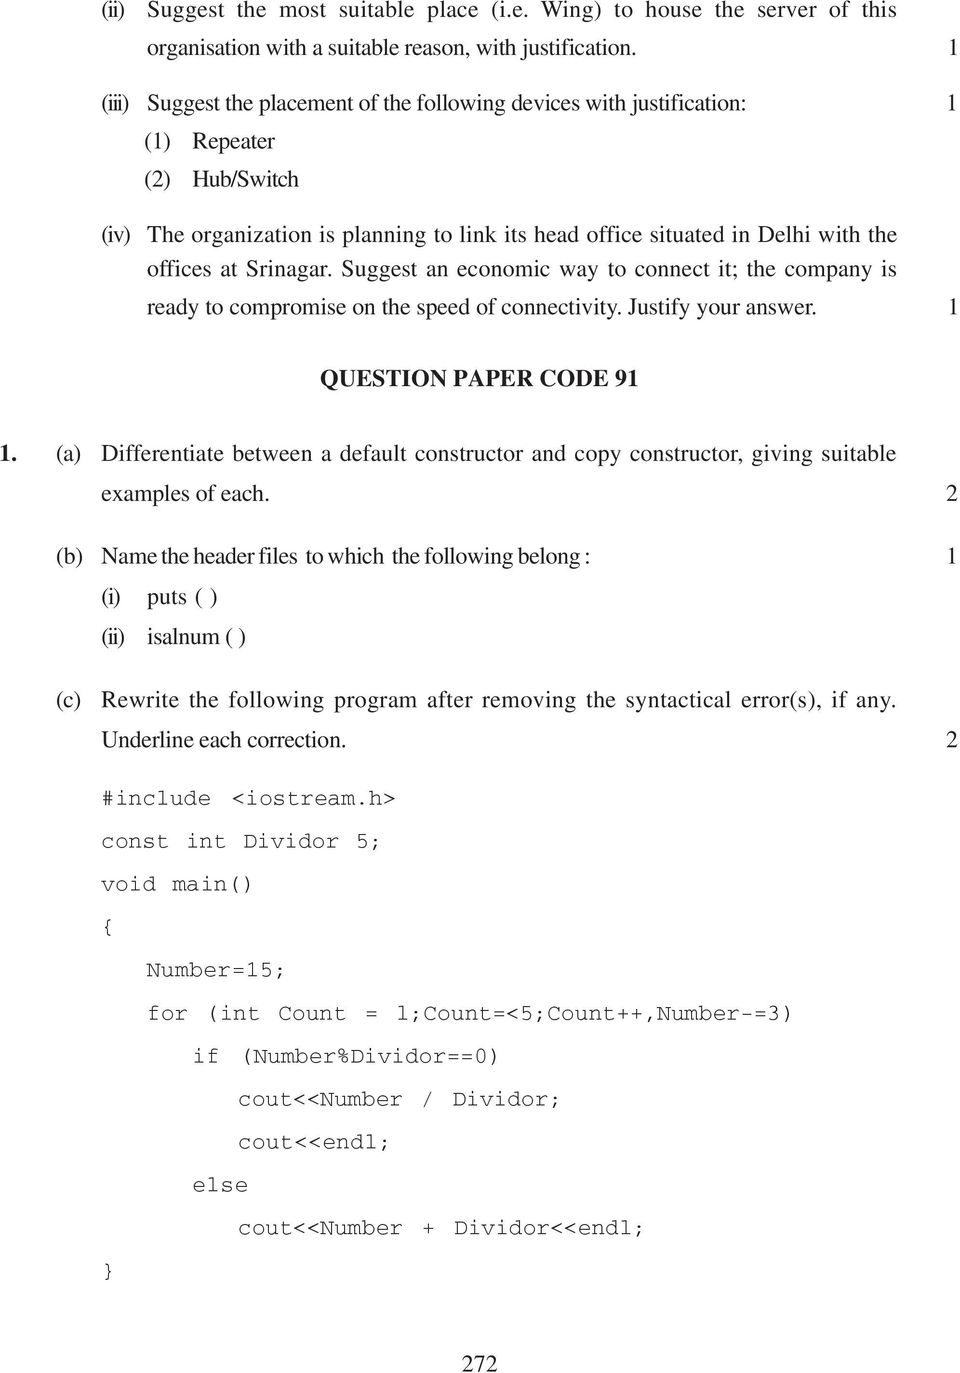 computer science question paper code 91 1 pdf